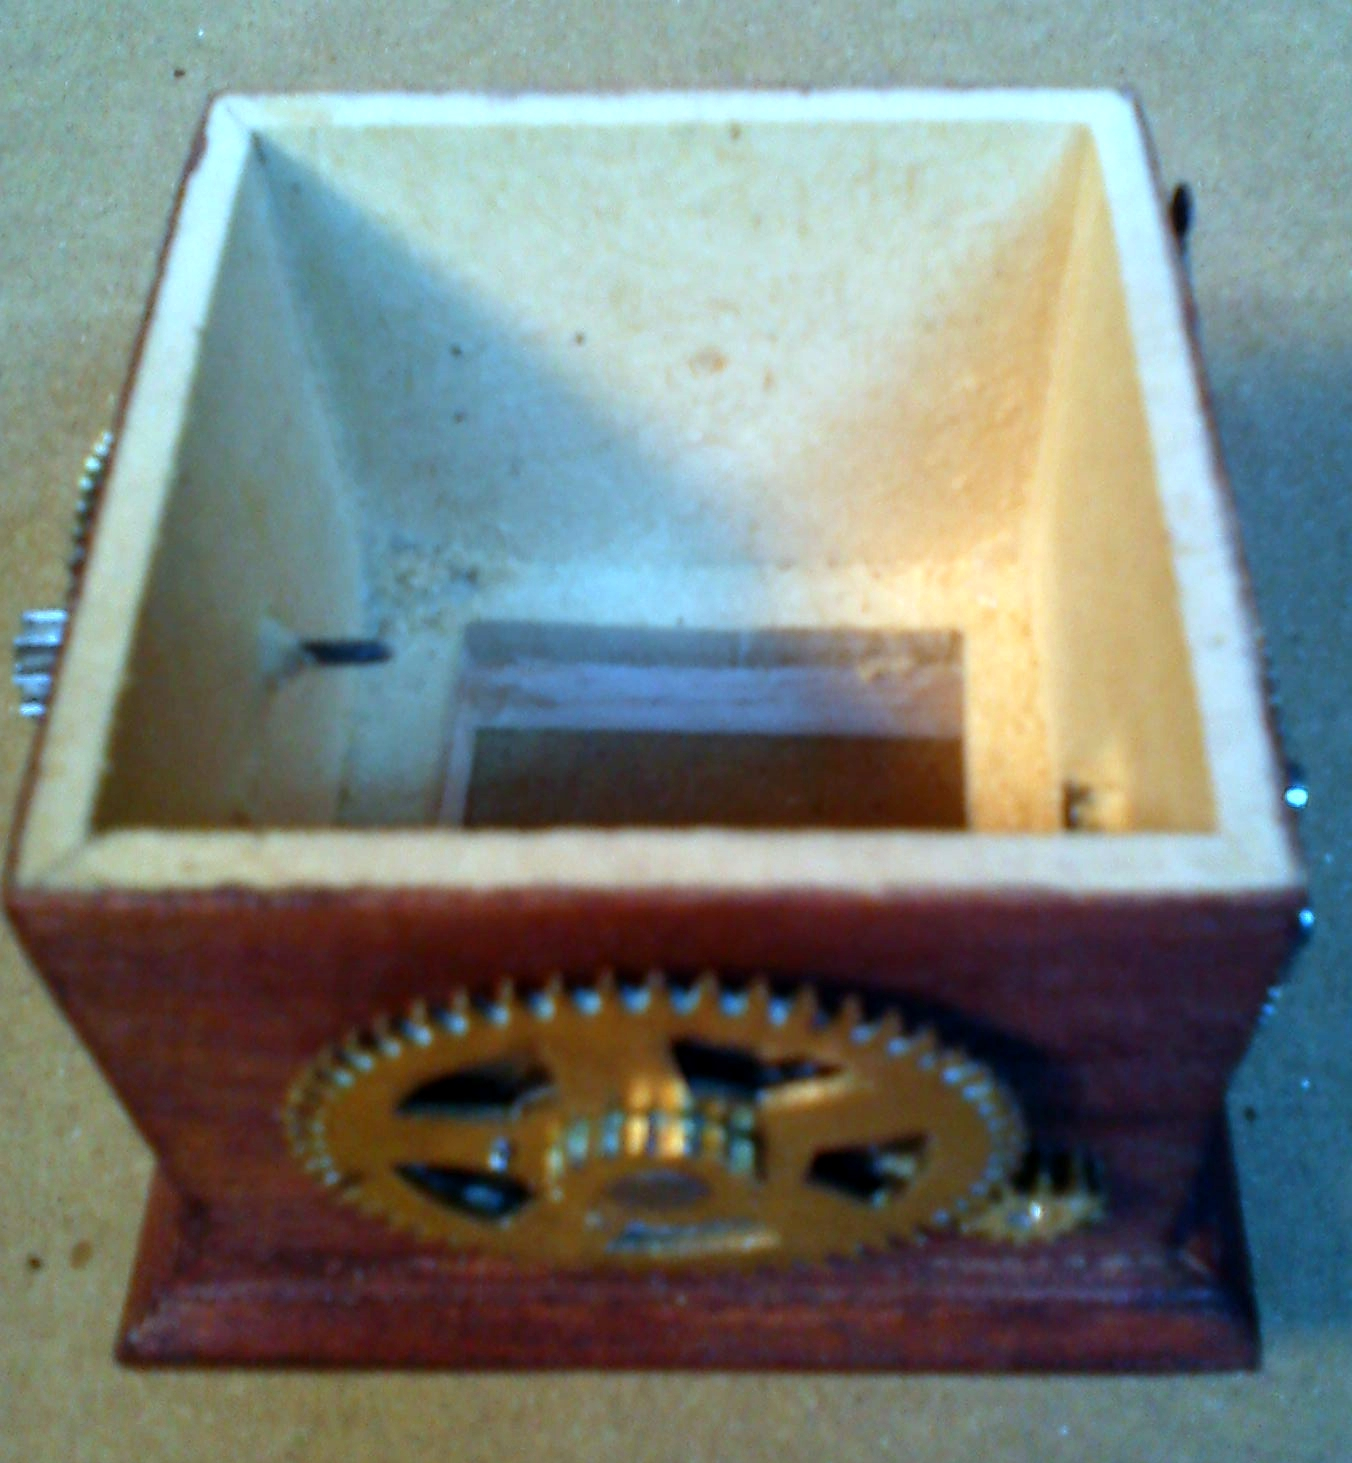 Picture of Antenna Base Box